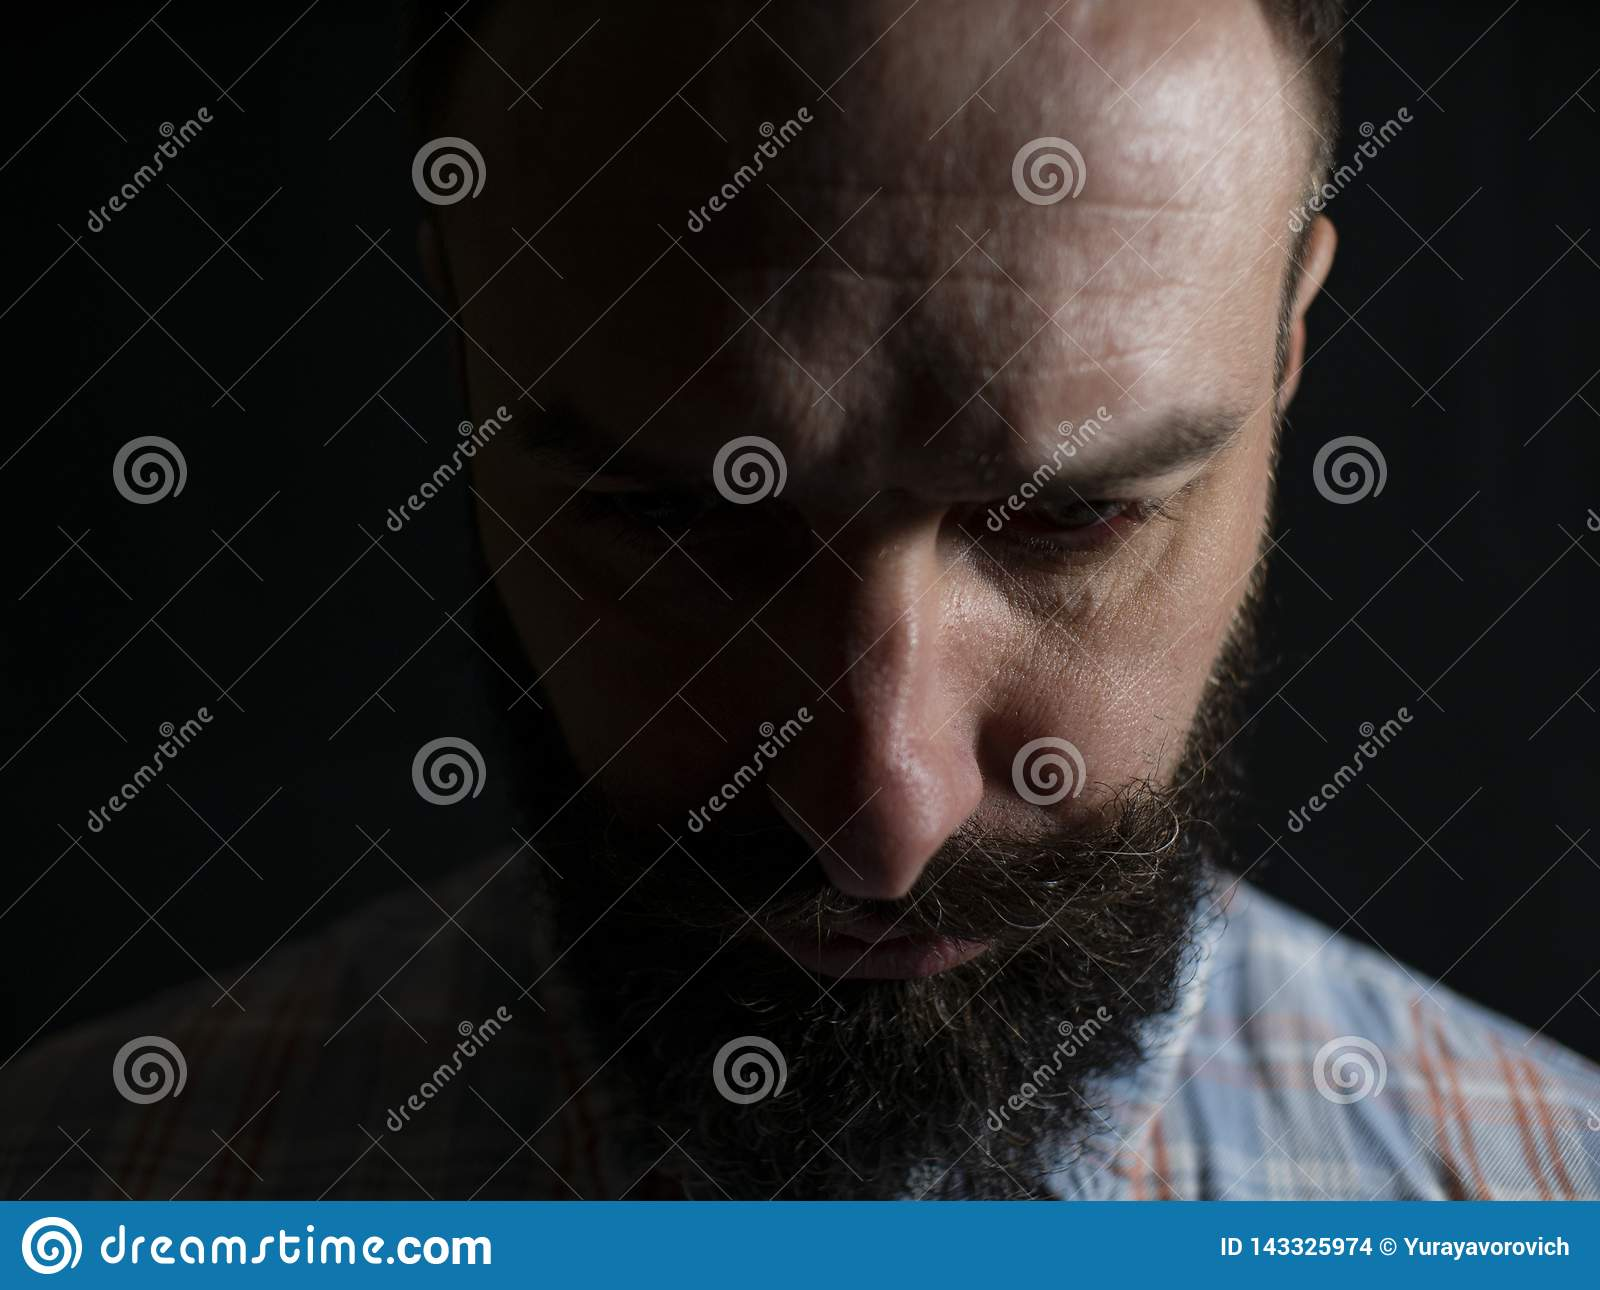 Serious face of a stylish man with a beard and mustache close-up looking to the bottom on a black background